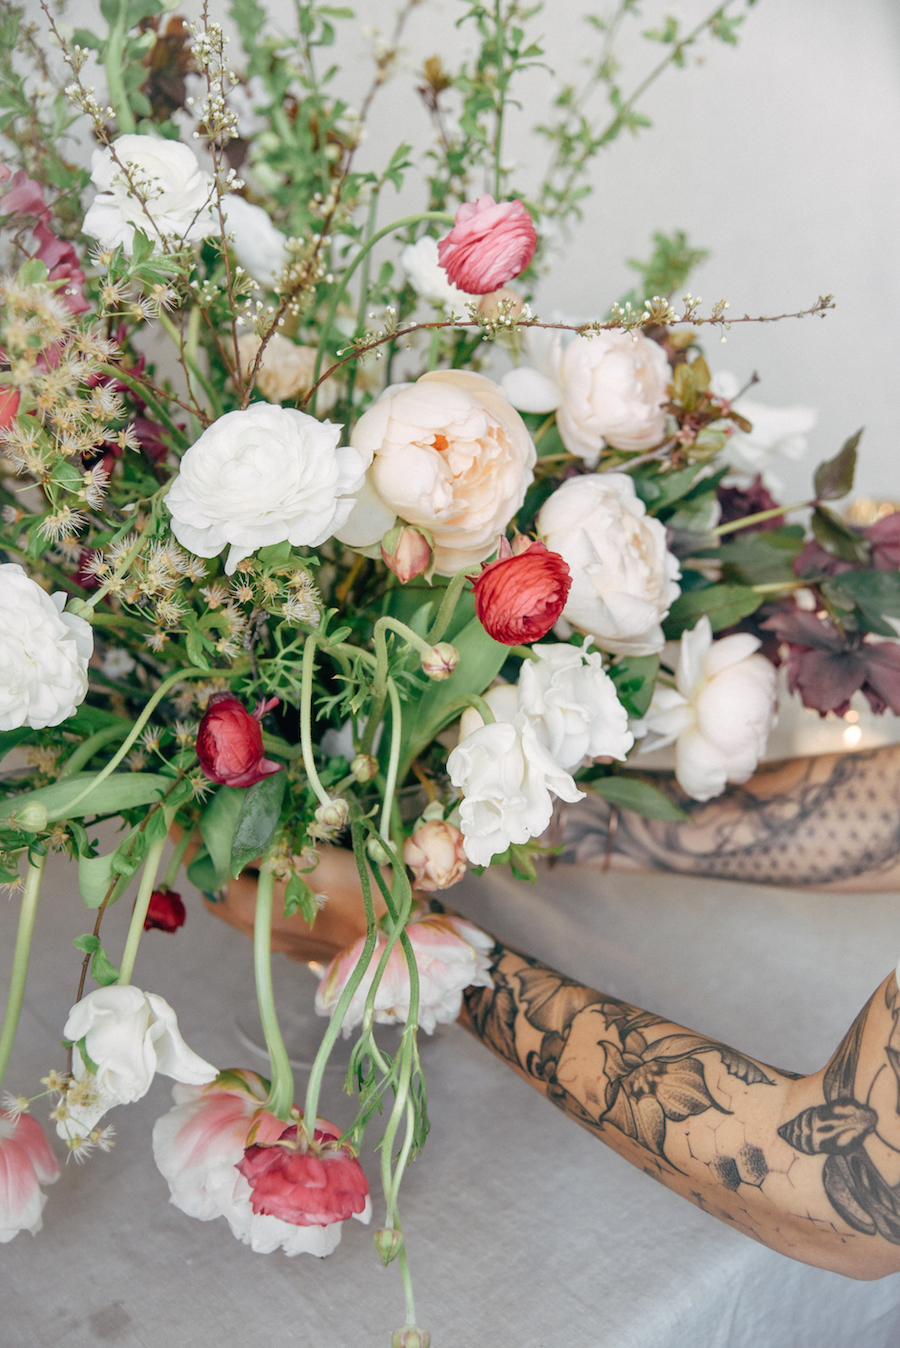 The small bursts of reds, pinks and corals the ranunculi provide in this arrangement more life a joy to a rather traditional palette. See more from Nicole Land's Soil & Stem Spring Floral Design Workshop now featured on Cottage Hill.